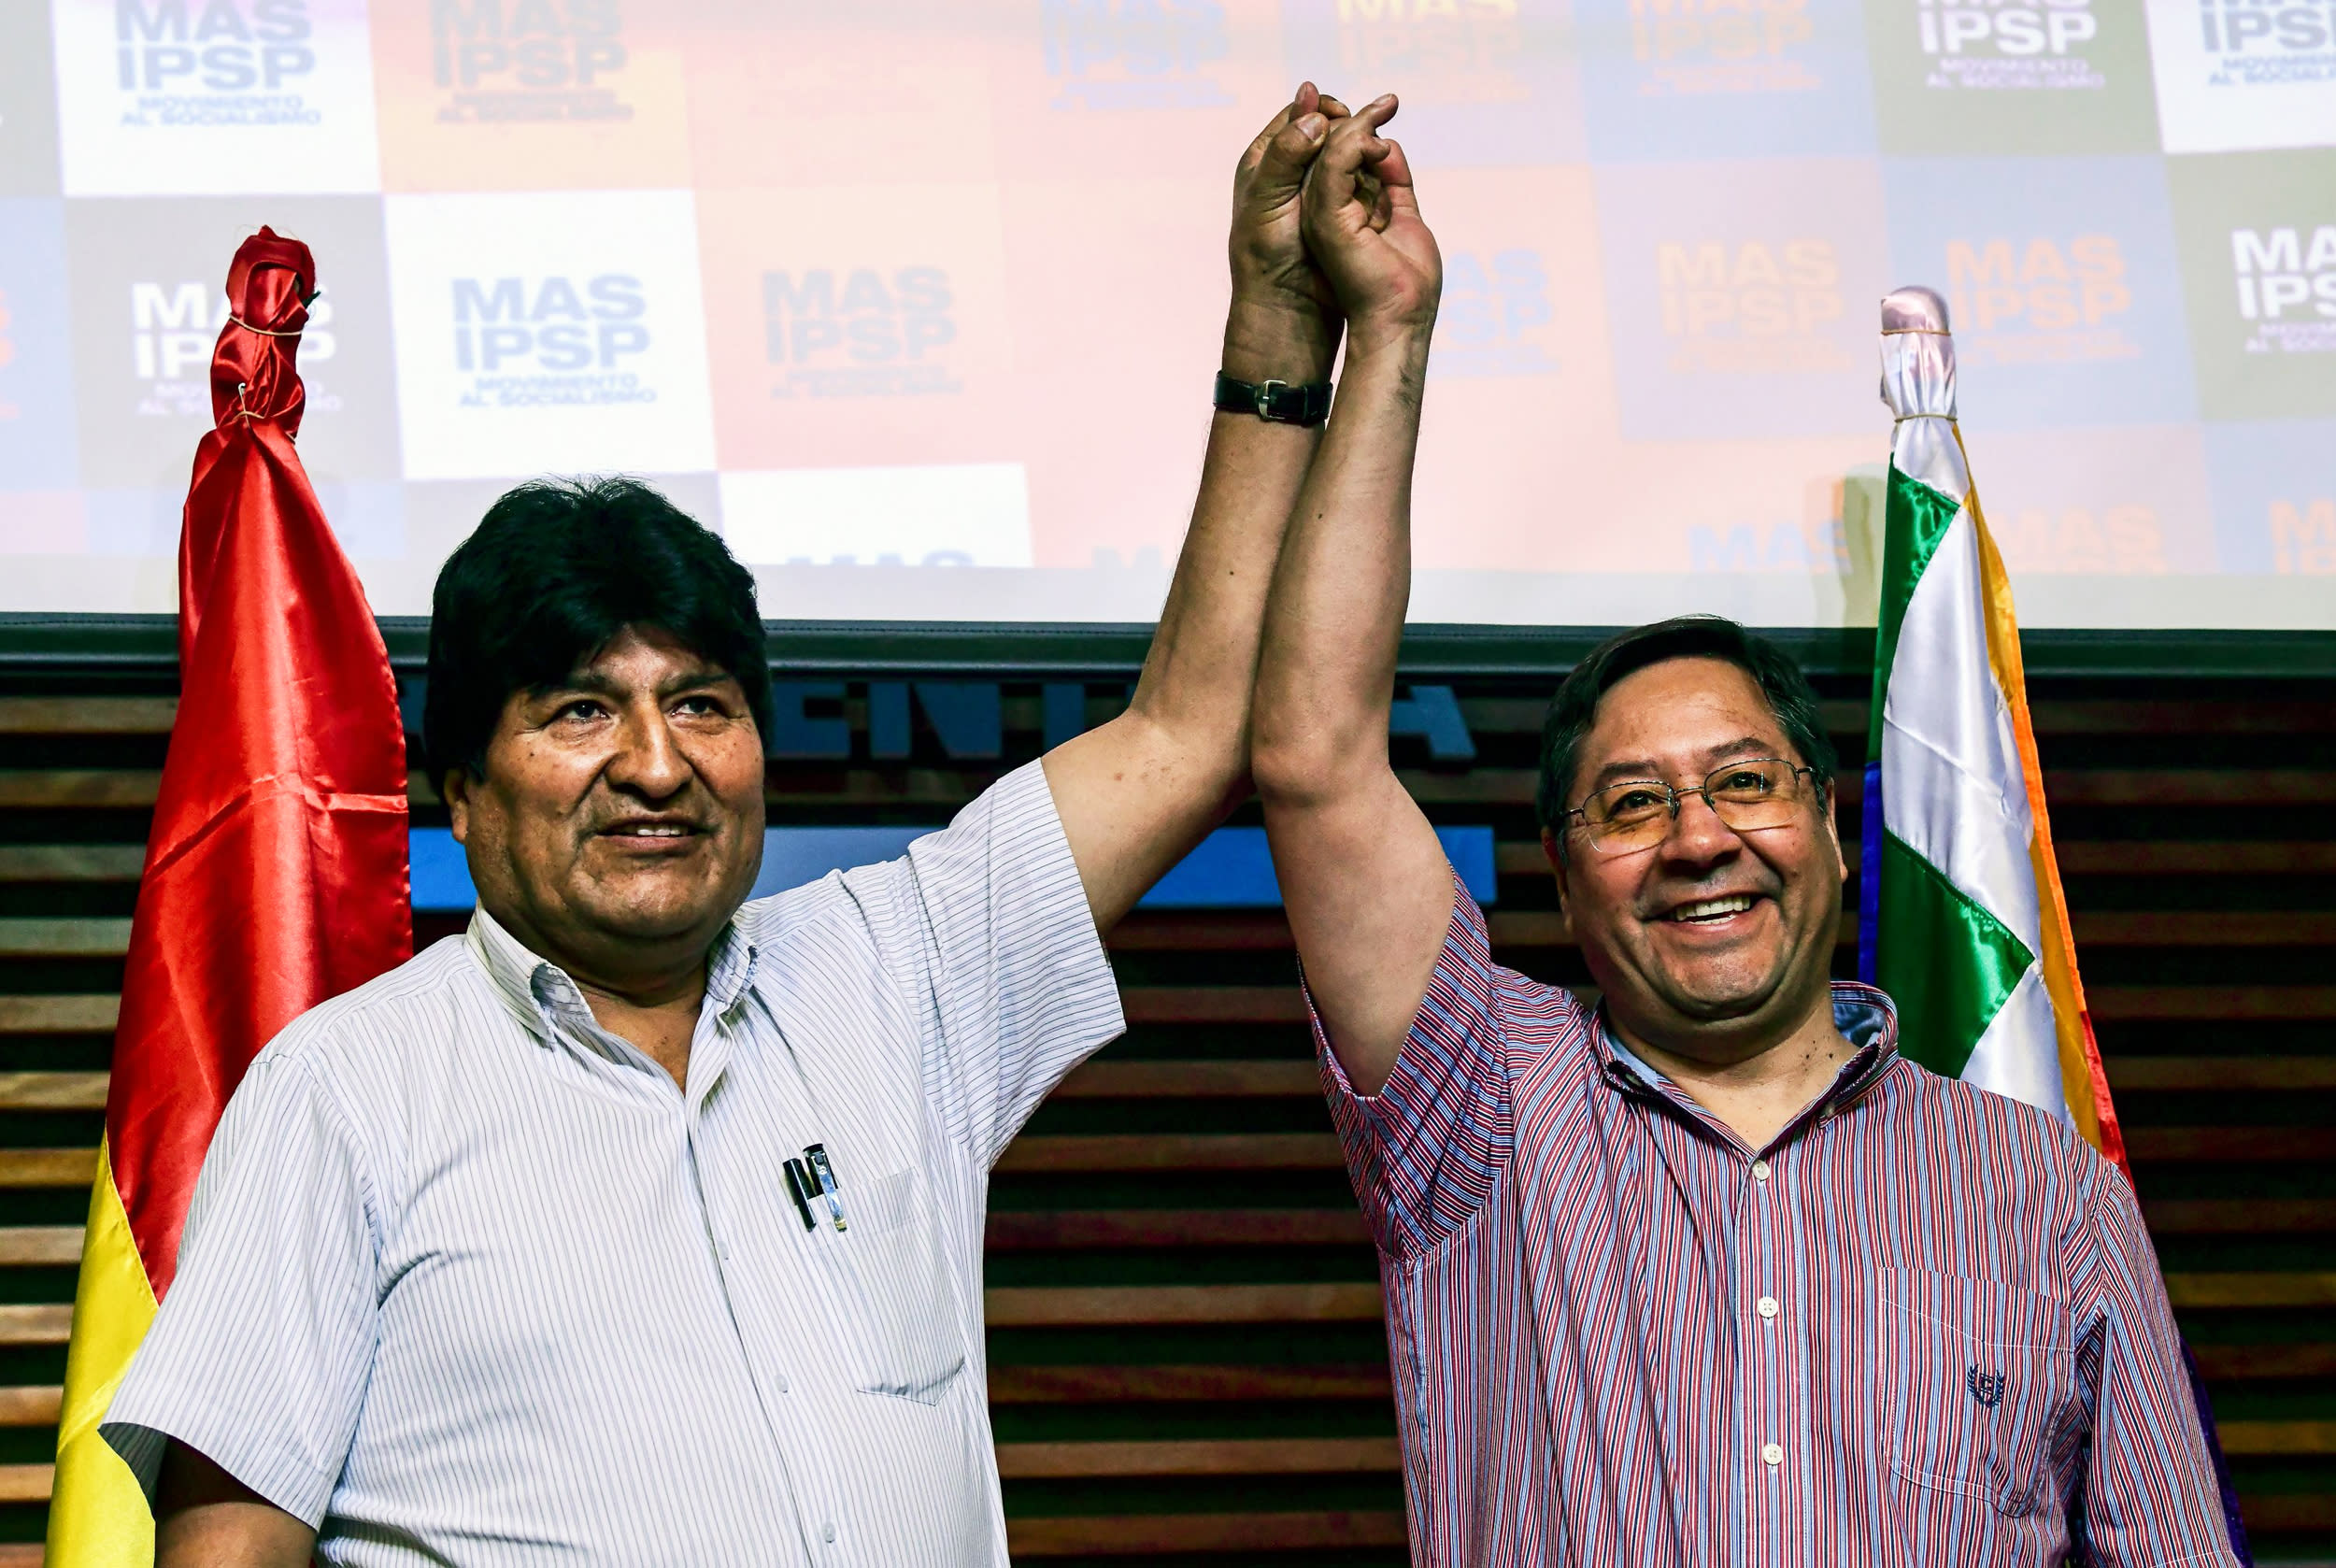 Bolivia appears to shift back left as Morales party claims victory after election